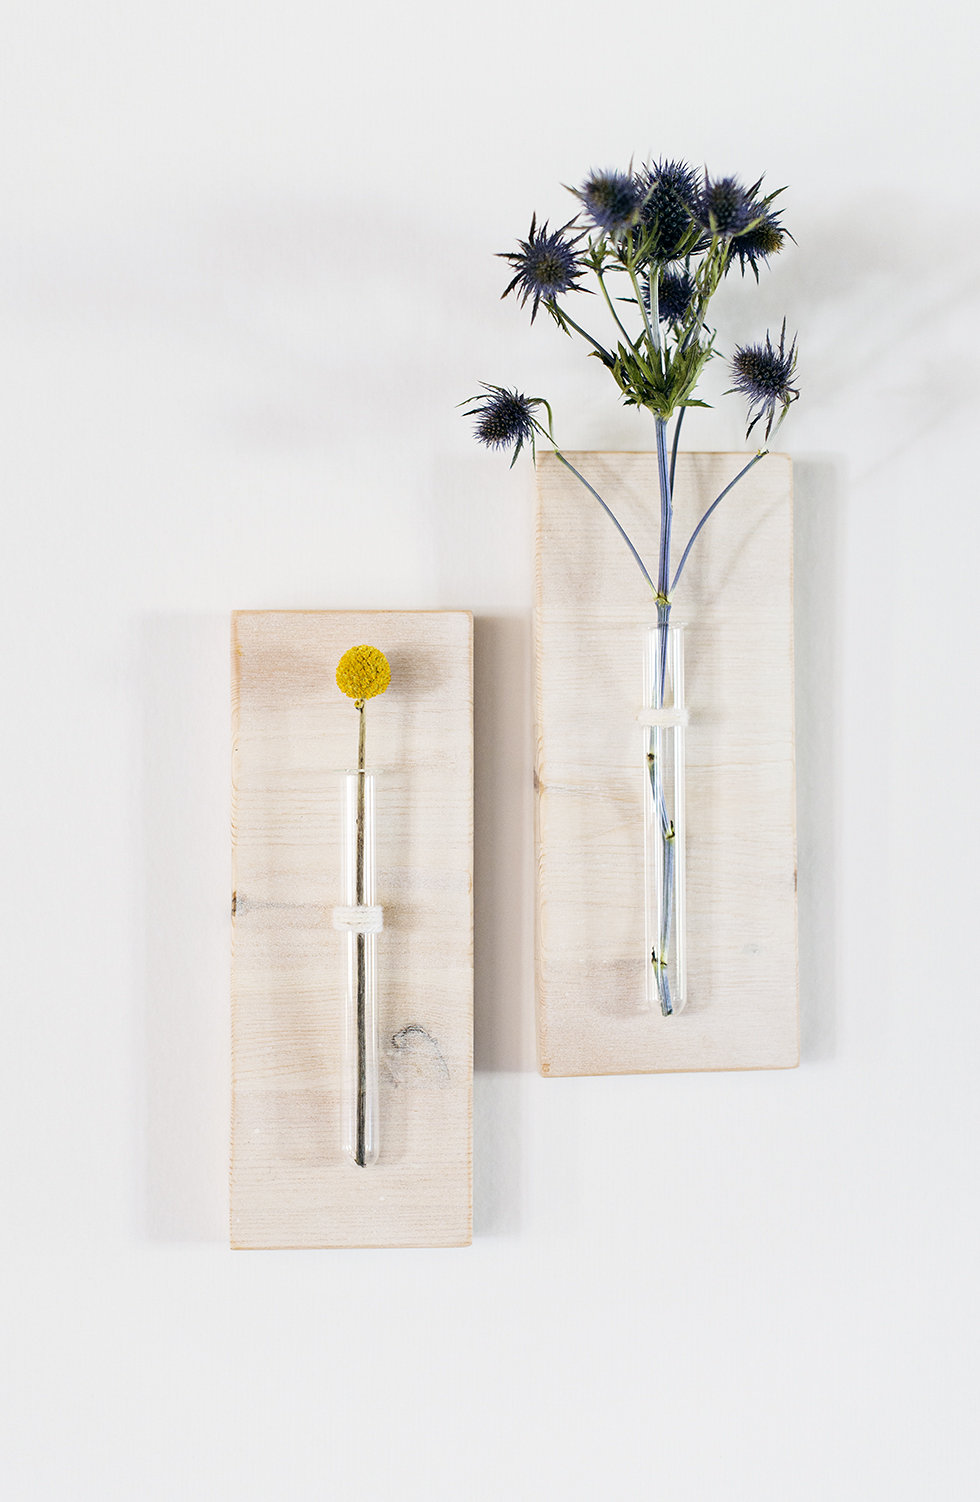 DIY- TEST TUBE VASE